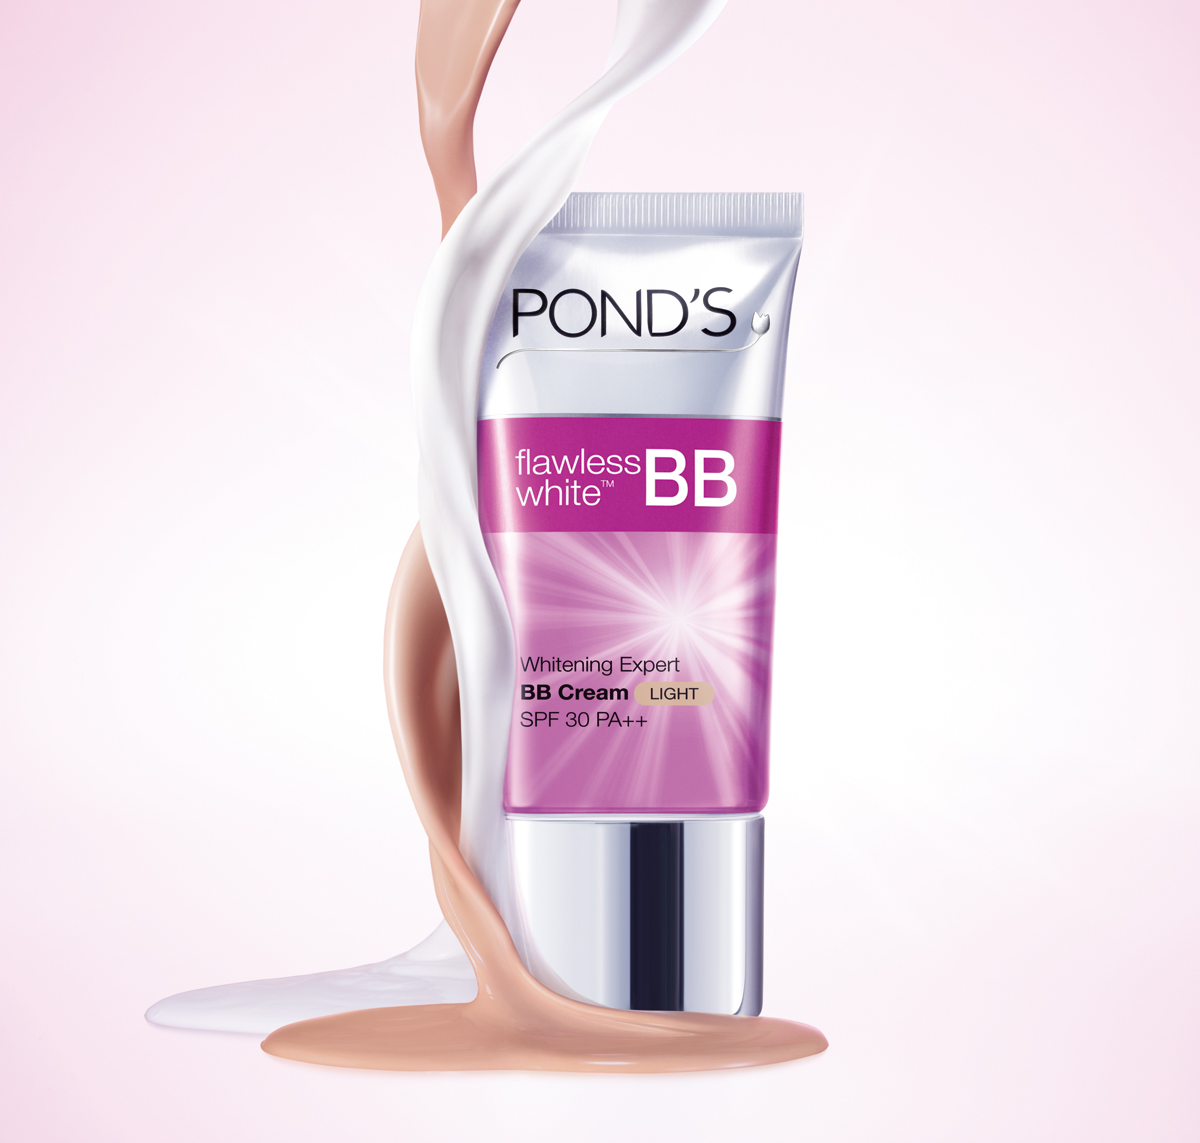 Ponds facial products fantasy